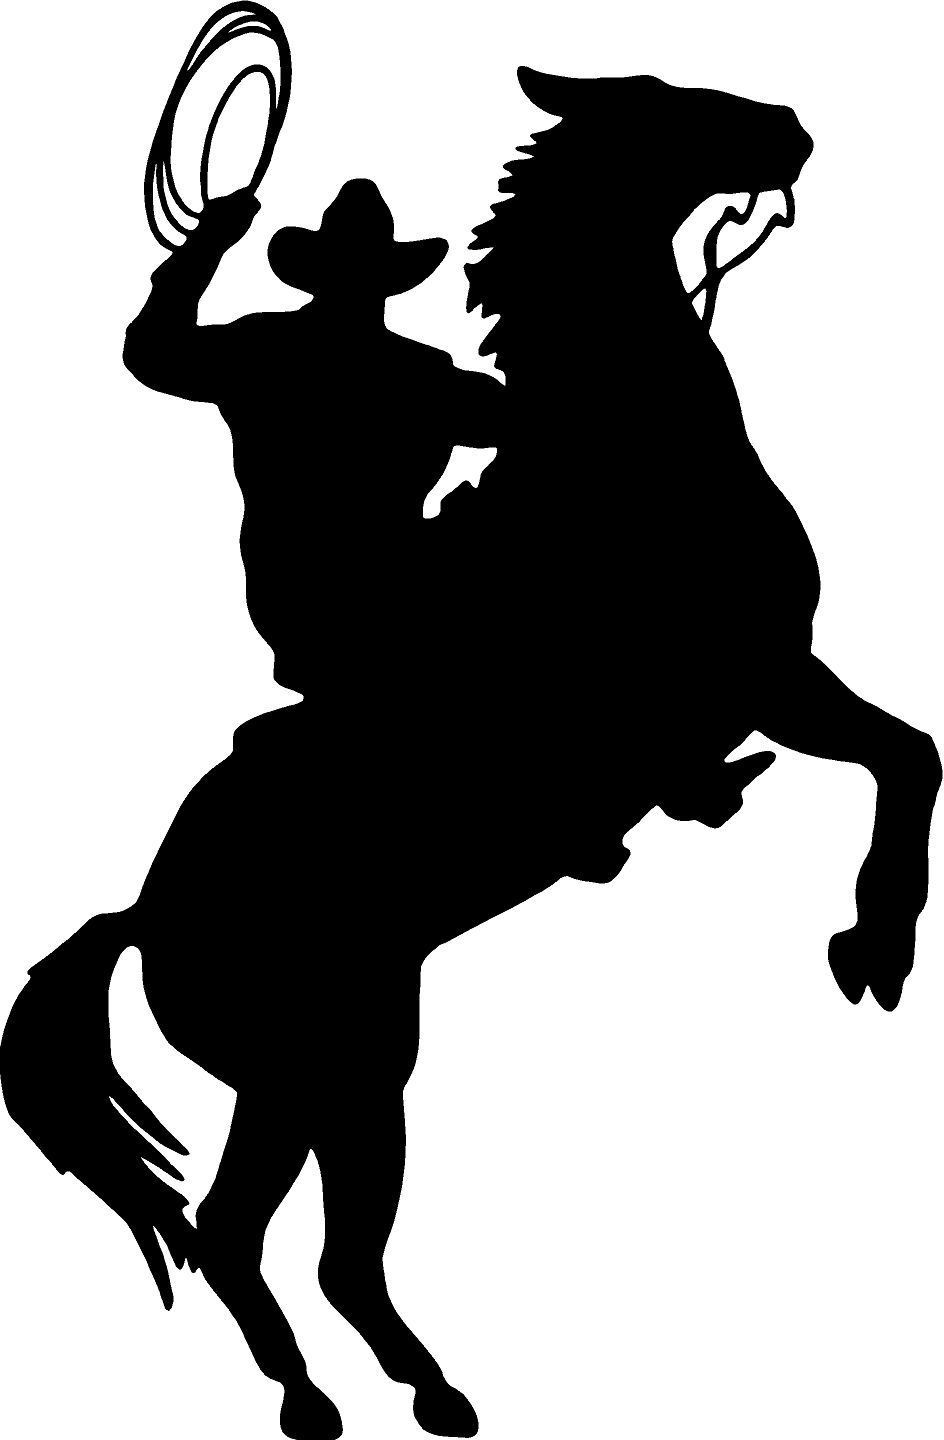 Cowboy Horse Rider Western Wall Decal Home Decor Silhouette Large Size Romoveable Pvc Sticker Home Decoration